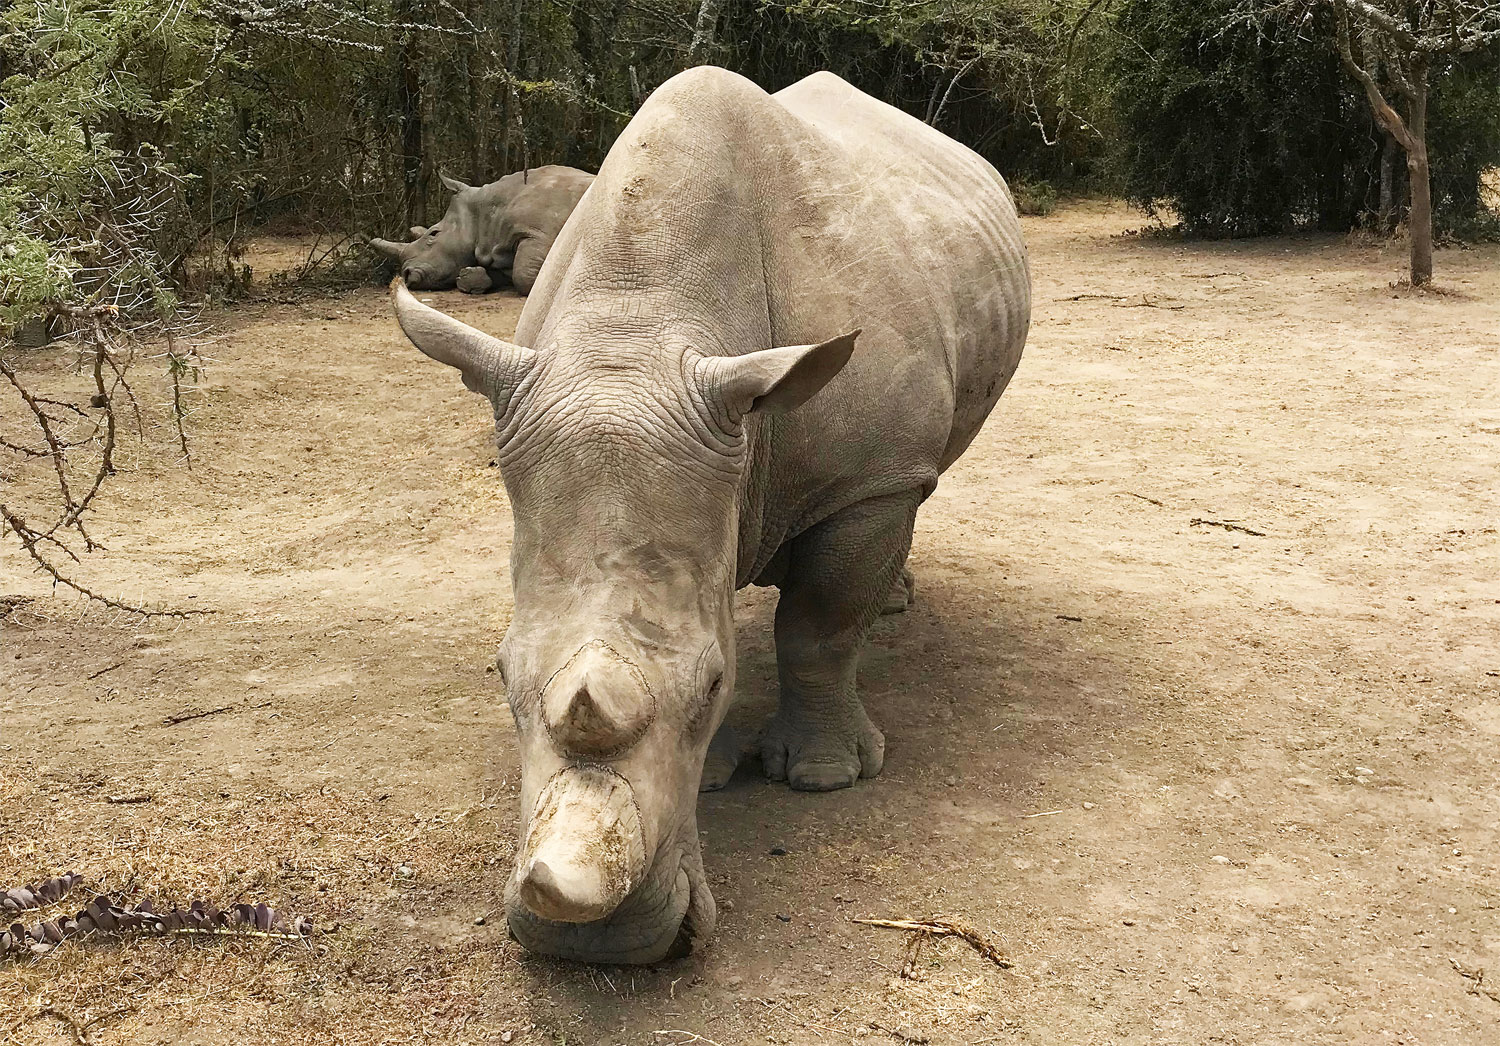 Photograph showing two rhinos